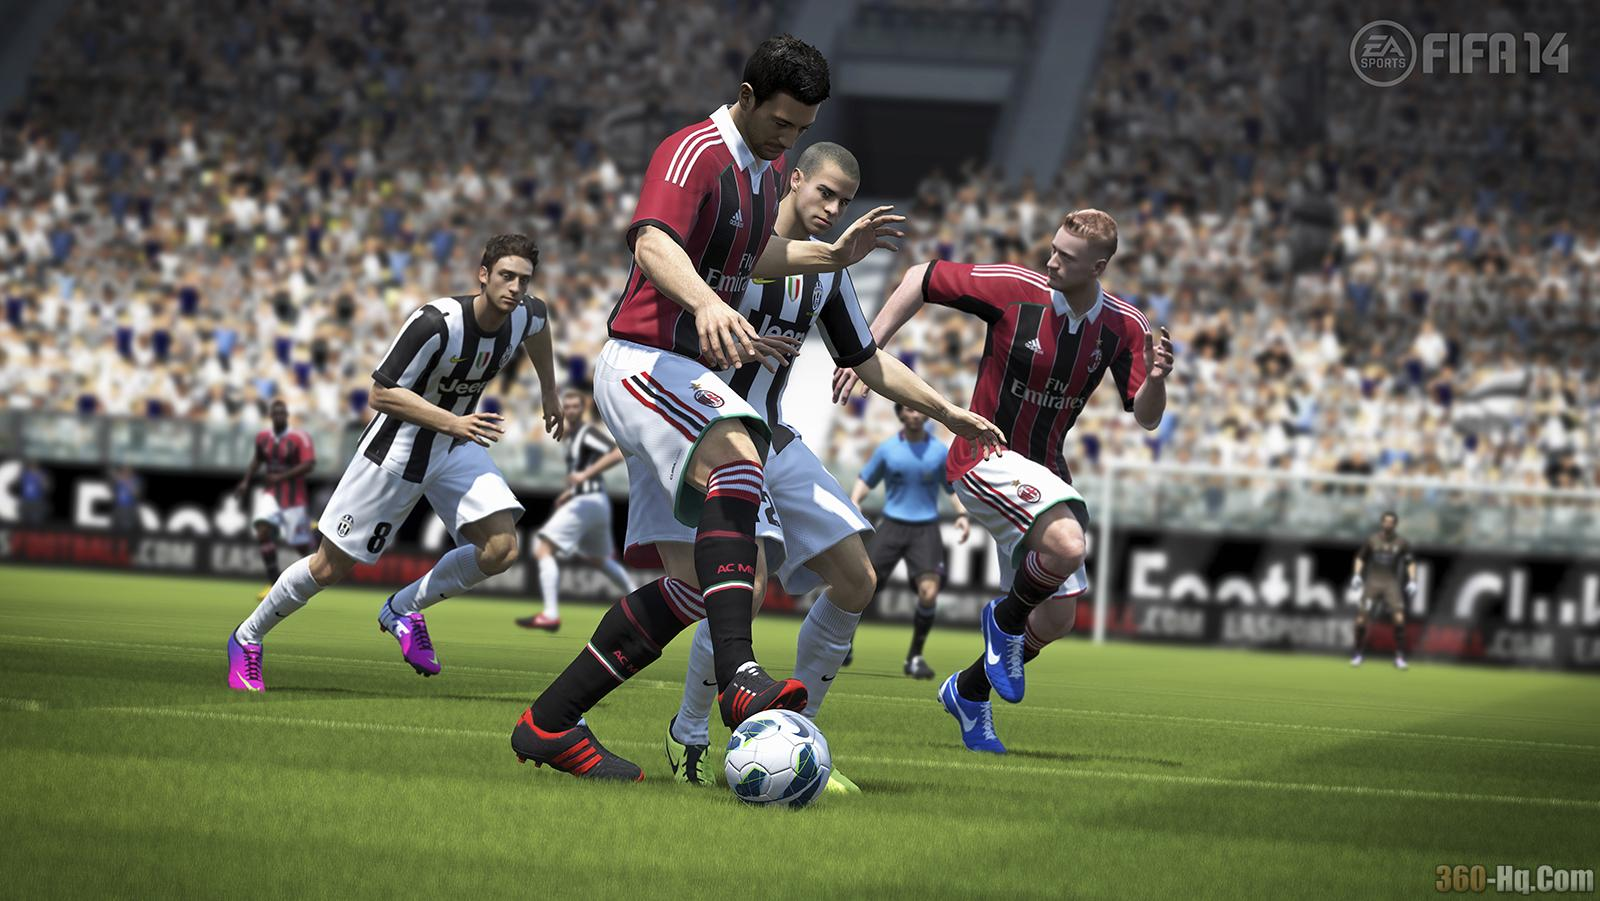 FIFA 14 Screenshot 27730